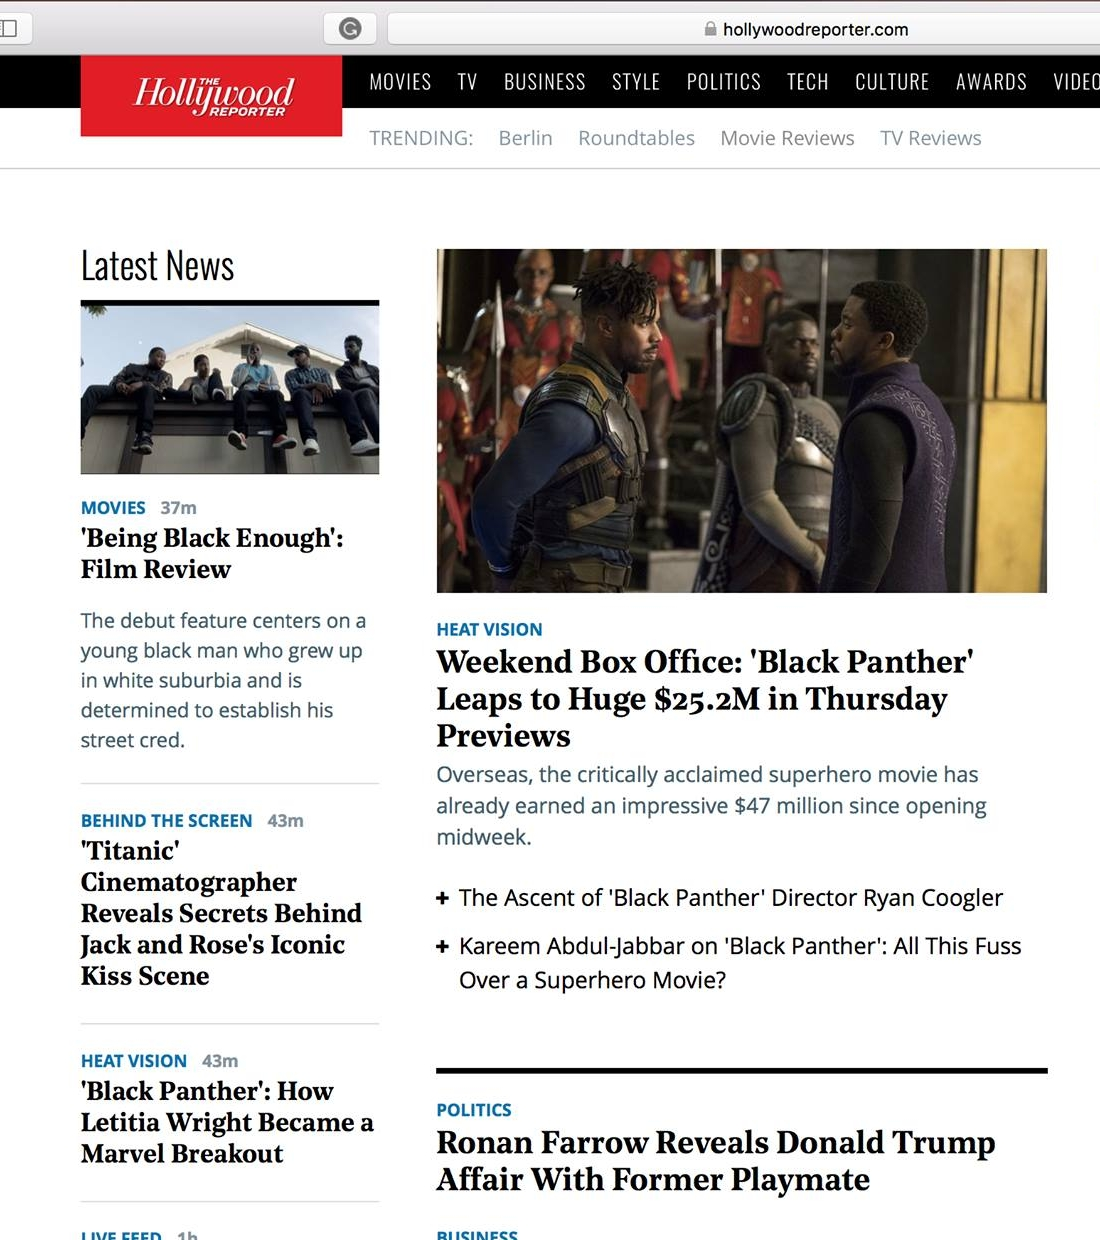 BEING BLACK ENOUGH on  The Hollywood Reporter homepage next to  Black Panther ! This film was my first ever feature film booking so it holds a very special place in my heart. It's truly amazing what  Devin and  Jacqueline have created, and I'm thankful to have been a part of this great project. BEING BLACK ENOUGH is now in theaters, available on iTunes and on the following platforms:  DirecTV Dish Network/Sling TV iN Demand - Comcast, Cox, Spectrum, etc. Vubiquity - Frontier, Verizon Fios, etc. Amazon Instant Video FandangoNow Google Play iTunes Sony PlayStation Swank - colleges, hospitals, prisons Vudu Xbox YouTube Movies